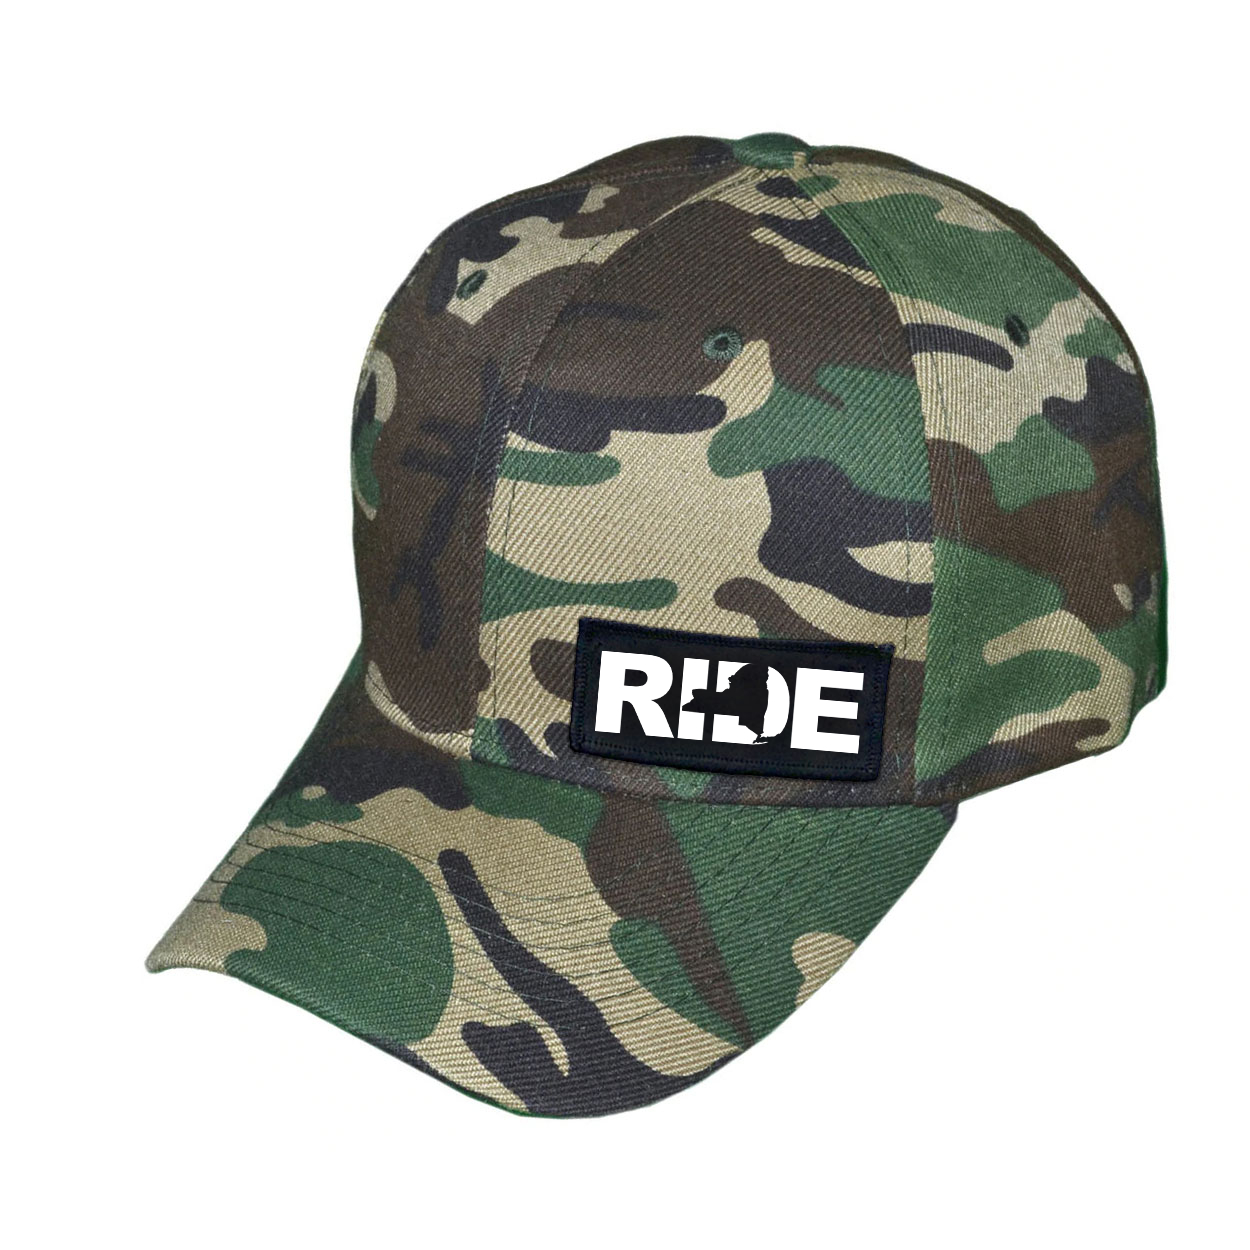 Ride New York Night Out Woven Patch Hat Camo (White Logo)